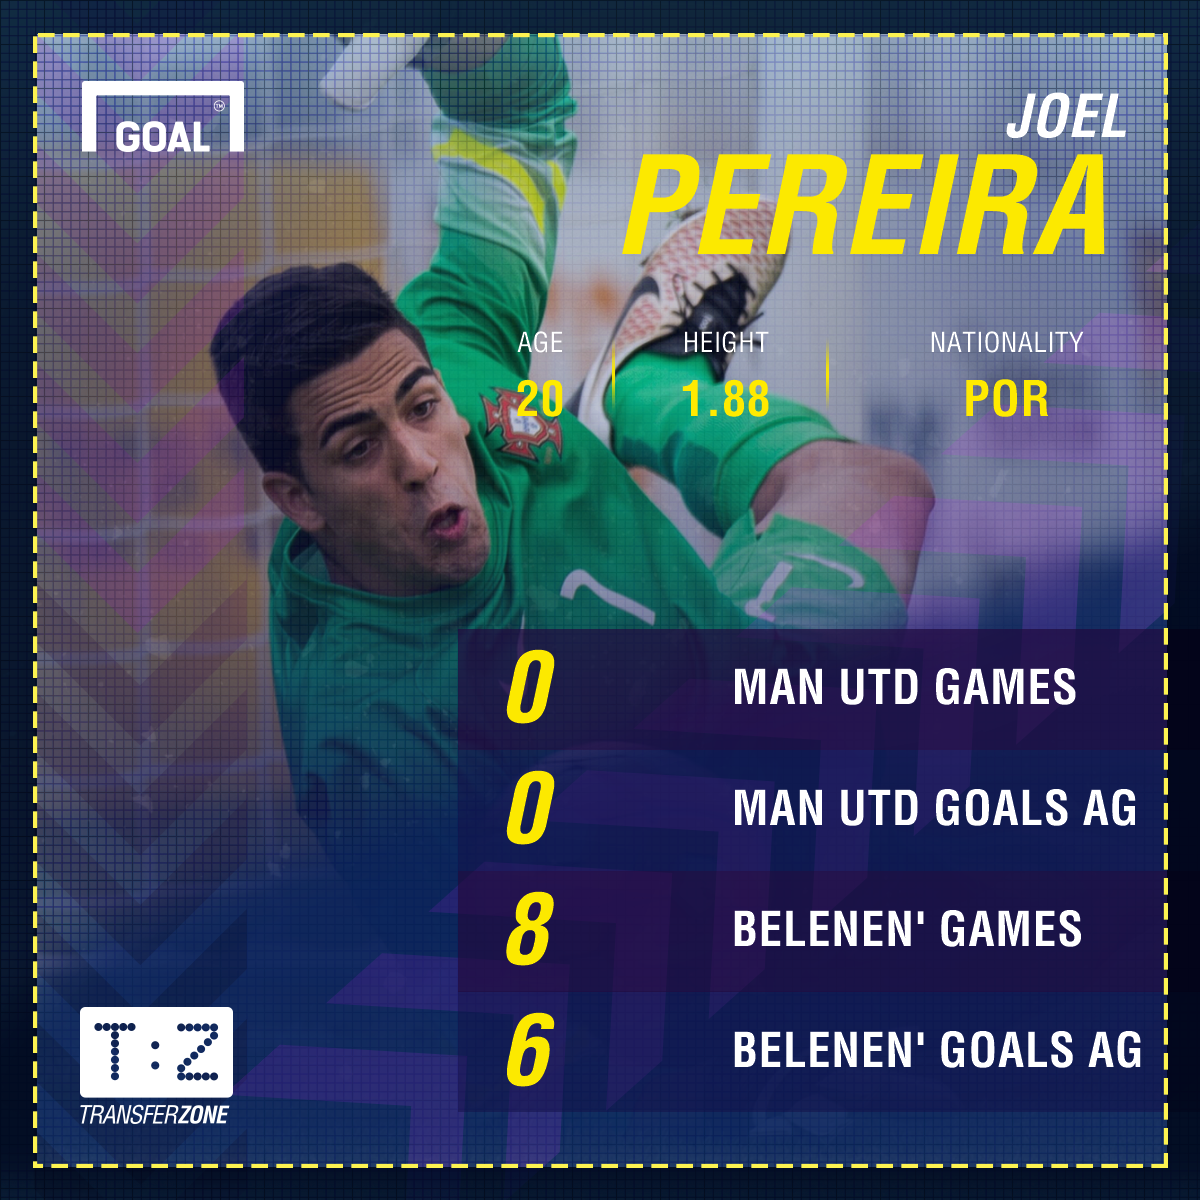 http://images.performgroup.com/di/library/GOAL_INTERNATIONAL/e7/65/joel-pereira-belenenses-manchester-united_jmv1giz1quh11qdq3yx1ihdnk.png?t=644479697